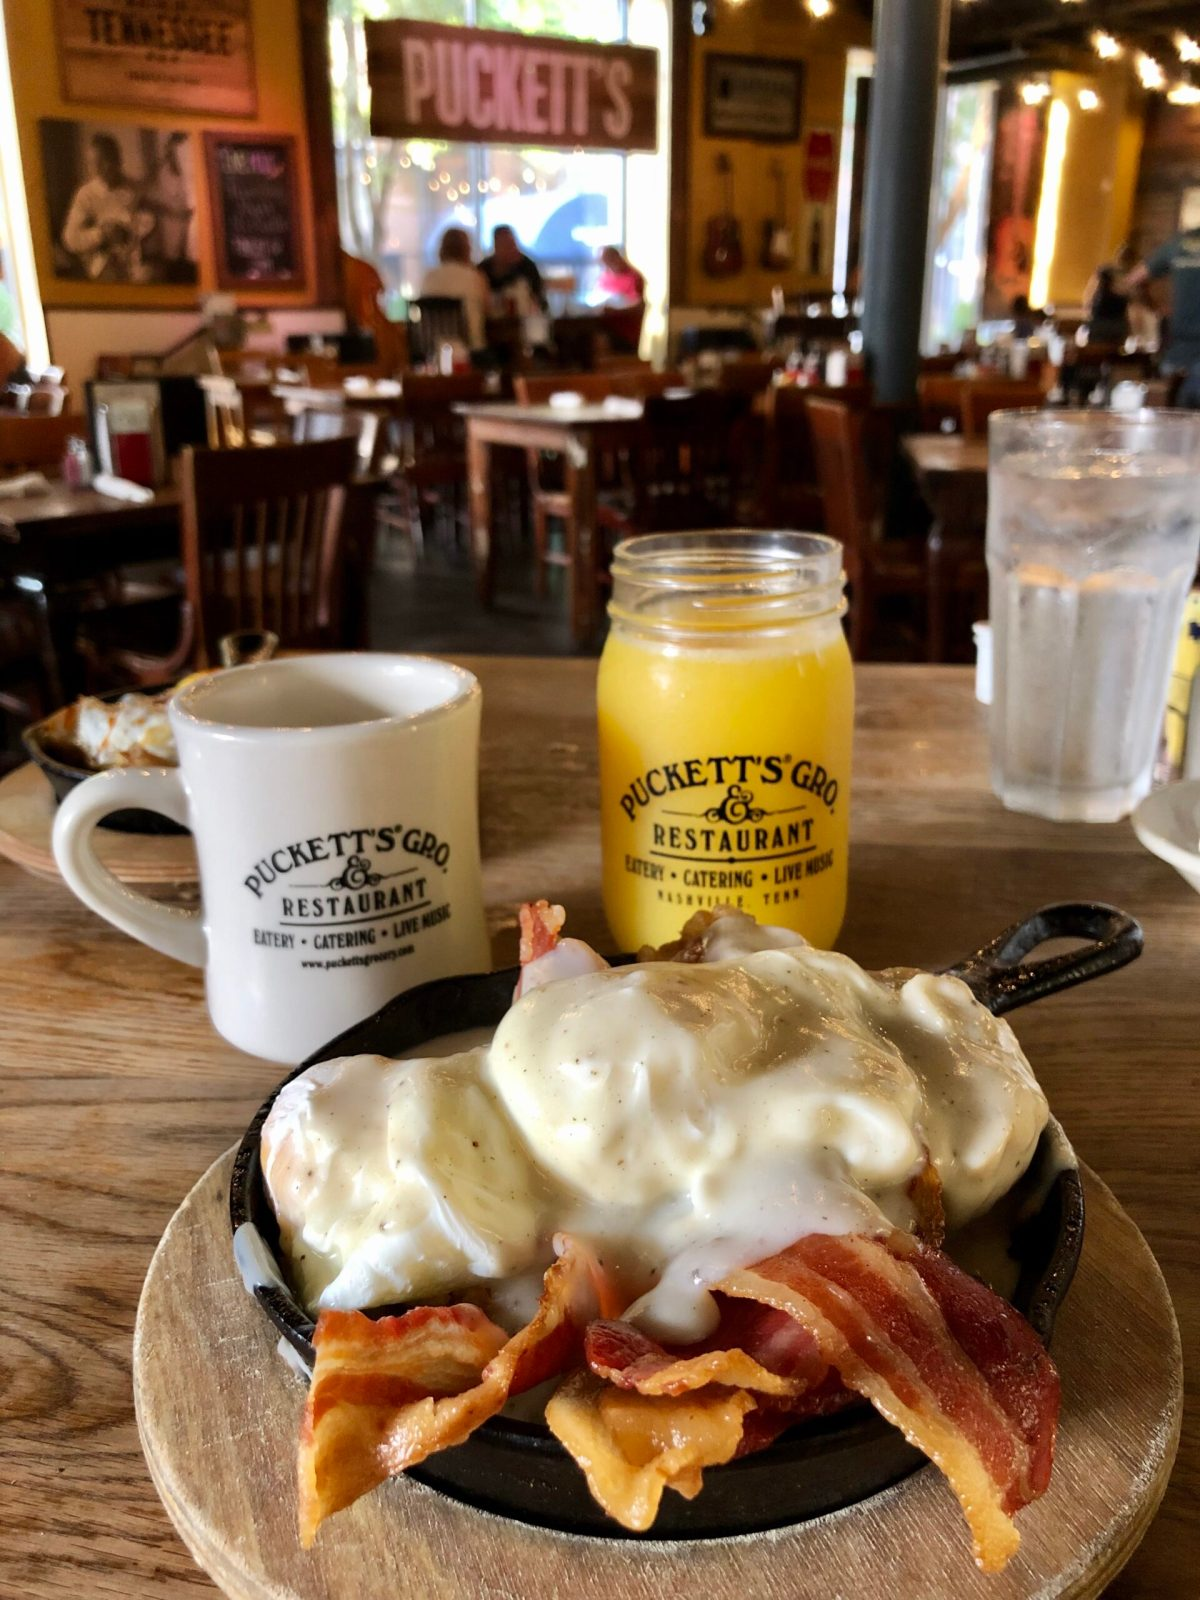 Puckett's Grocery & Restaurant | Nashville, TN #nashvillevacation #nashvillefood #bestbreakfastnashville #puckettsgrocery #puckettsgrocerynashville #breakfastplacesinnashville #nashvilletn